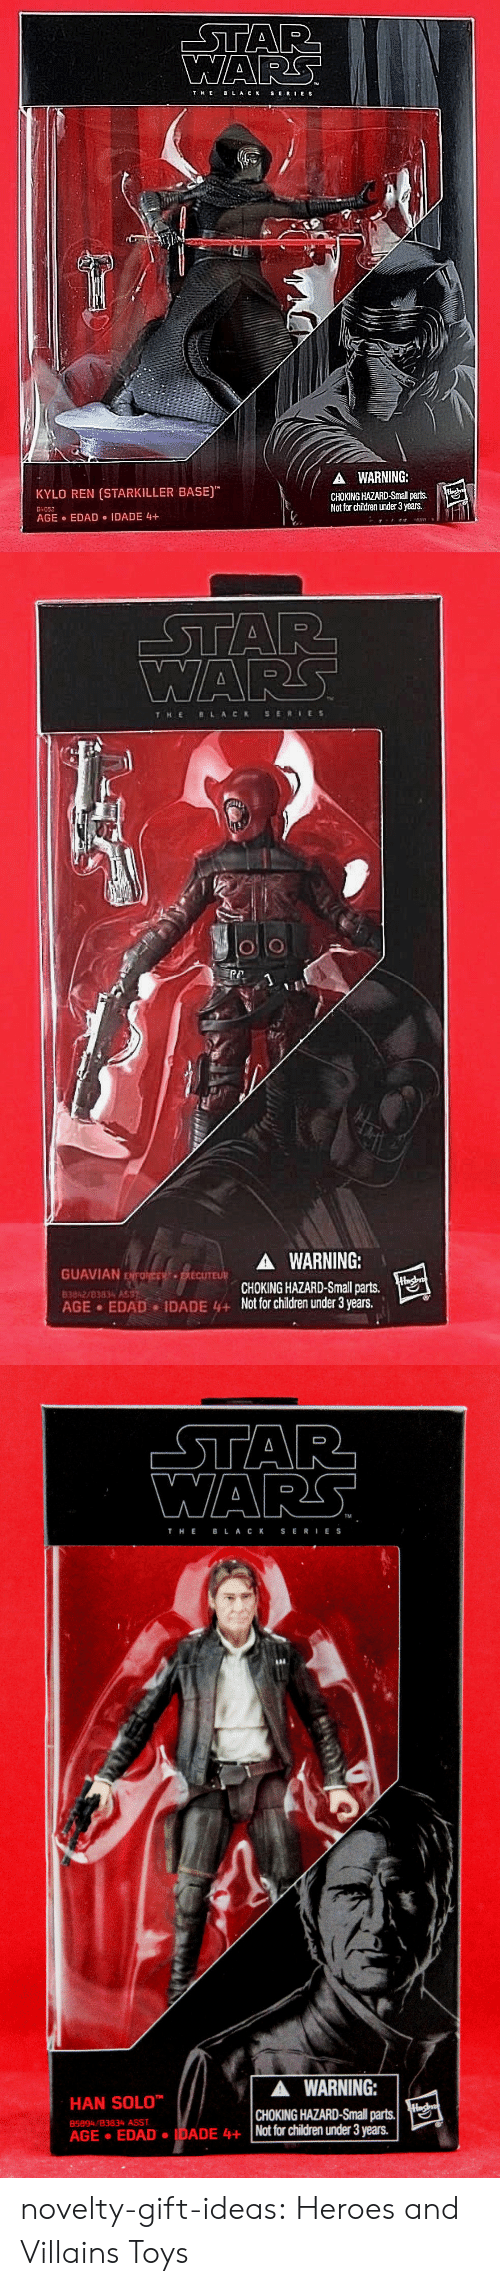 Children, eBay, and Han Solo: THE  LACK SERIES  A WARNING:  CHOKING HAZARD-Small parts.  Not for chiïdren under 3 years.  KYLO REN (STARKILLER BASE)  64052  AGE EDAD IDADE 4+   WARS  T HE BLACKSERIES  GUAVIAN E  83842/83834 ASS  AGE EDAD  A WARNING:  CHOKING HAZARD-Small parts.  IDADE 4+Not for children under 3 years.   WARS  TM  THE B L AC K SERIES  HAN SOLO  AGE EDADANot tor children under 3 years.  ▲ WARNING:  CHOKING HAZARD-Small parts.  85894/B3834 ASST novelty-gift-ideas:    Heroes and Villains Toys